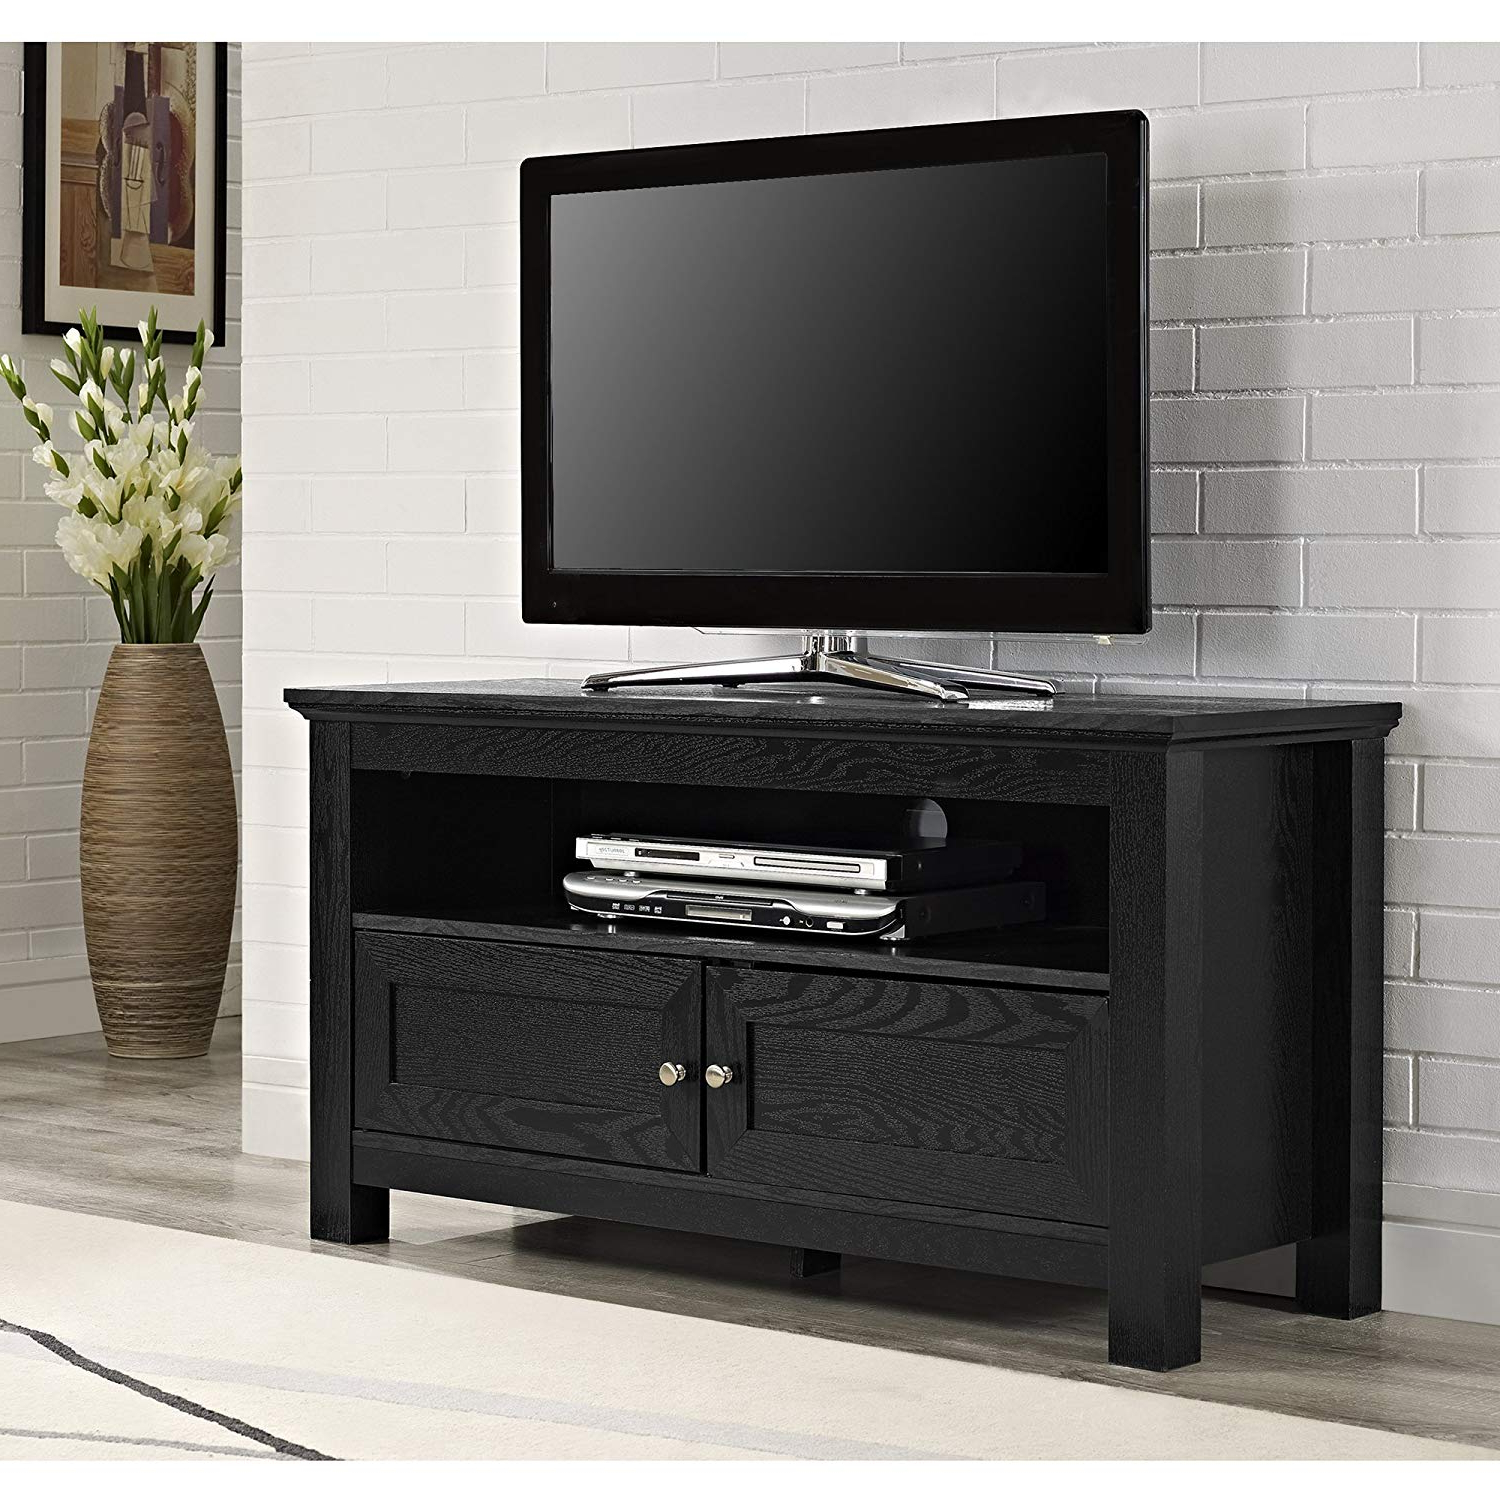 Corner Tv Stands For 46 Inch Flat Screen For Latest Amazon: Walker Edison 44 Inches Cortez Tv Stand Console, Black (View 3 of 20)